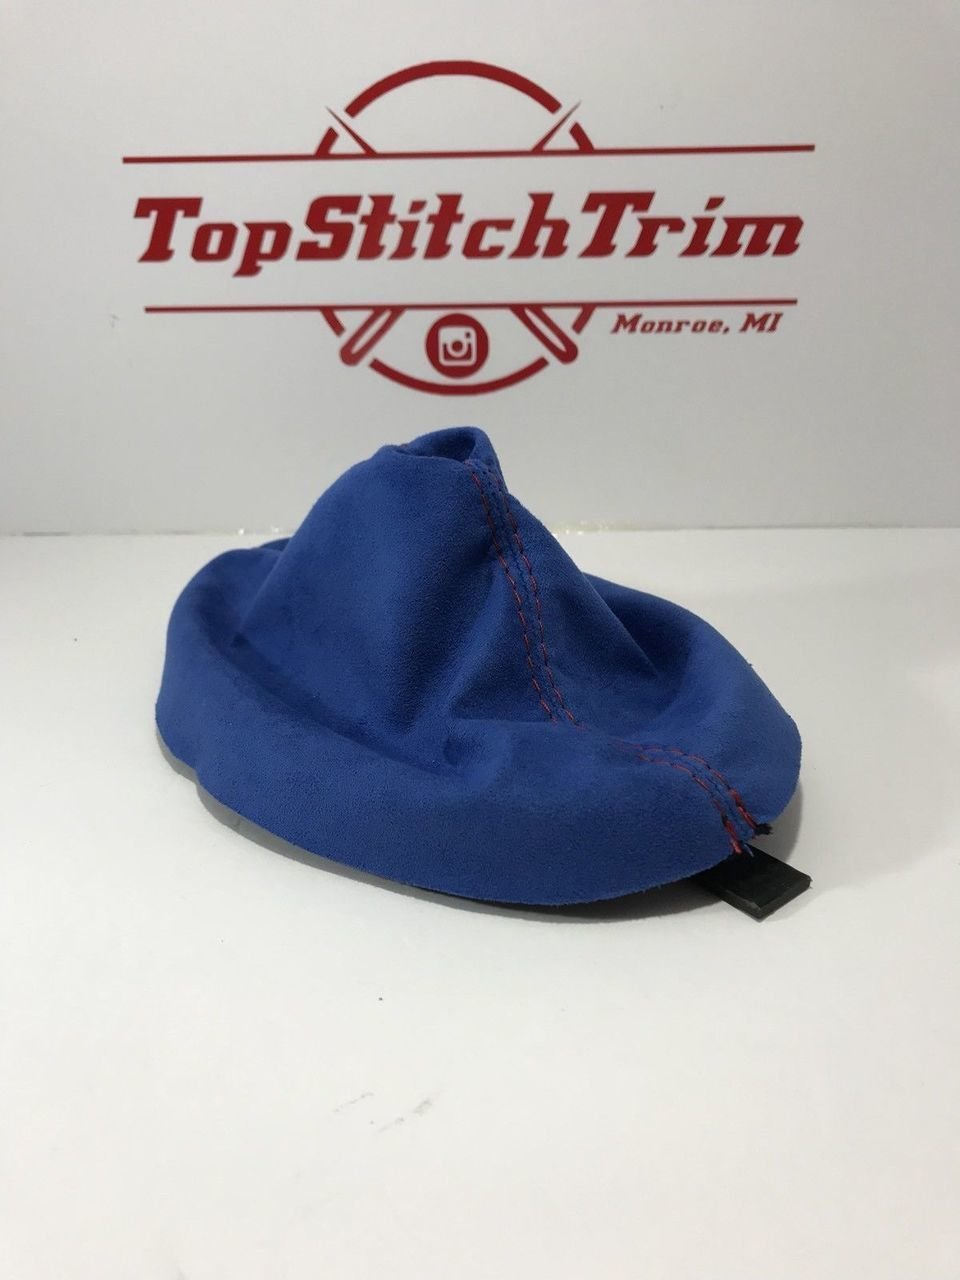 For 03-05 Dodge Neon SRT-4 Shift Boot Blue Suede Red Stitch